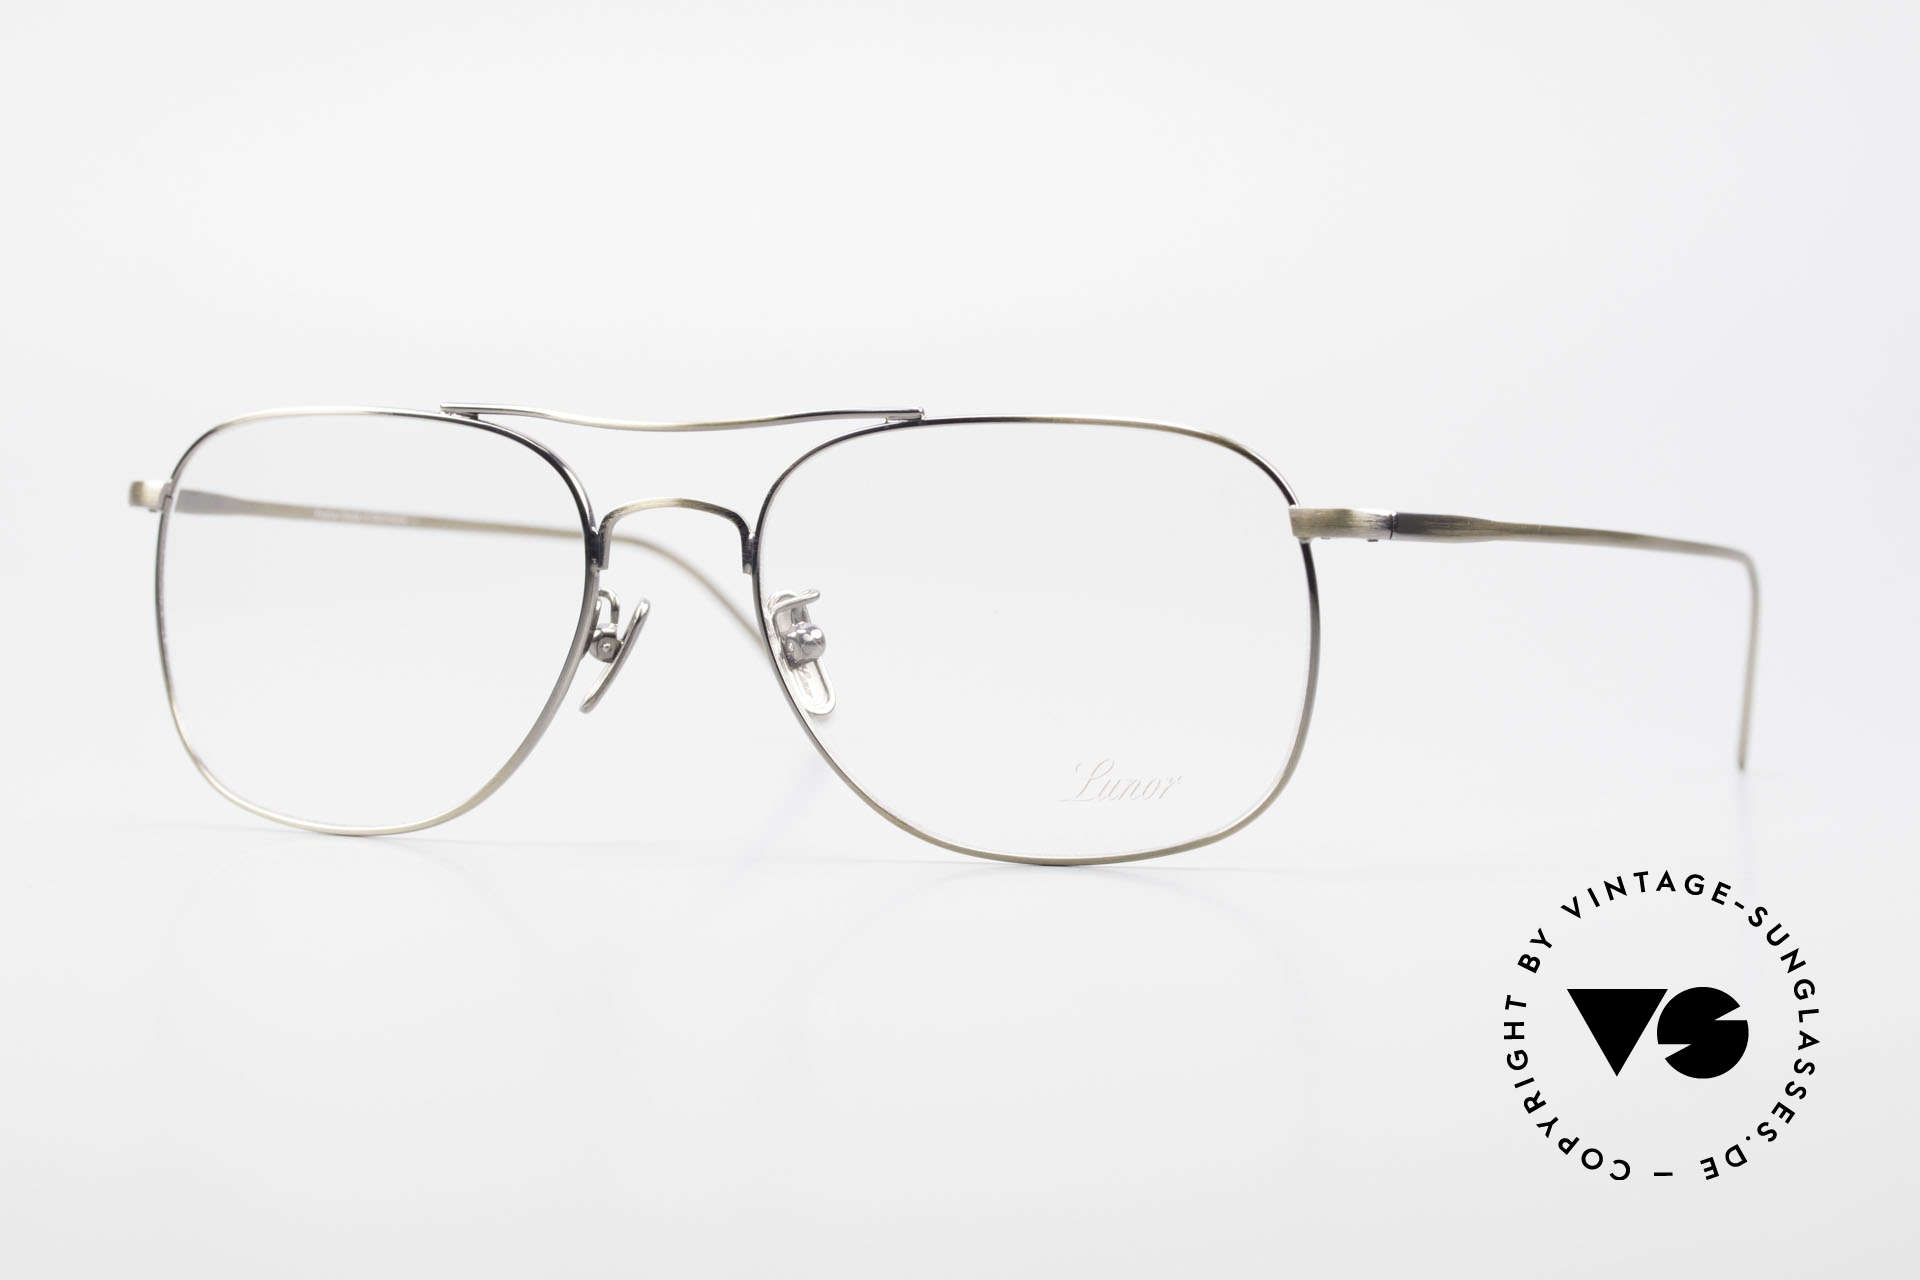 Lunor Aviator II P4 AG Classy Men's Eyeglass-Frame, LUNOR: honest craftsmanship with attention to details, Made for Men